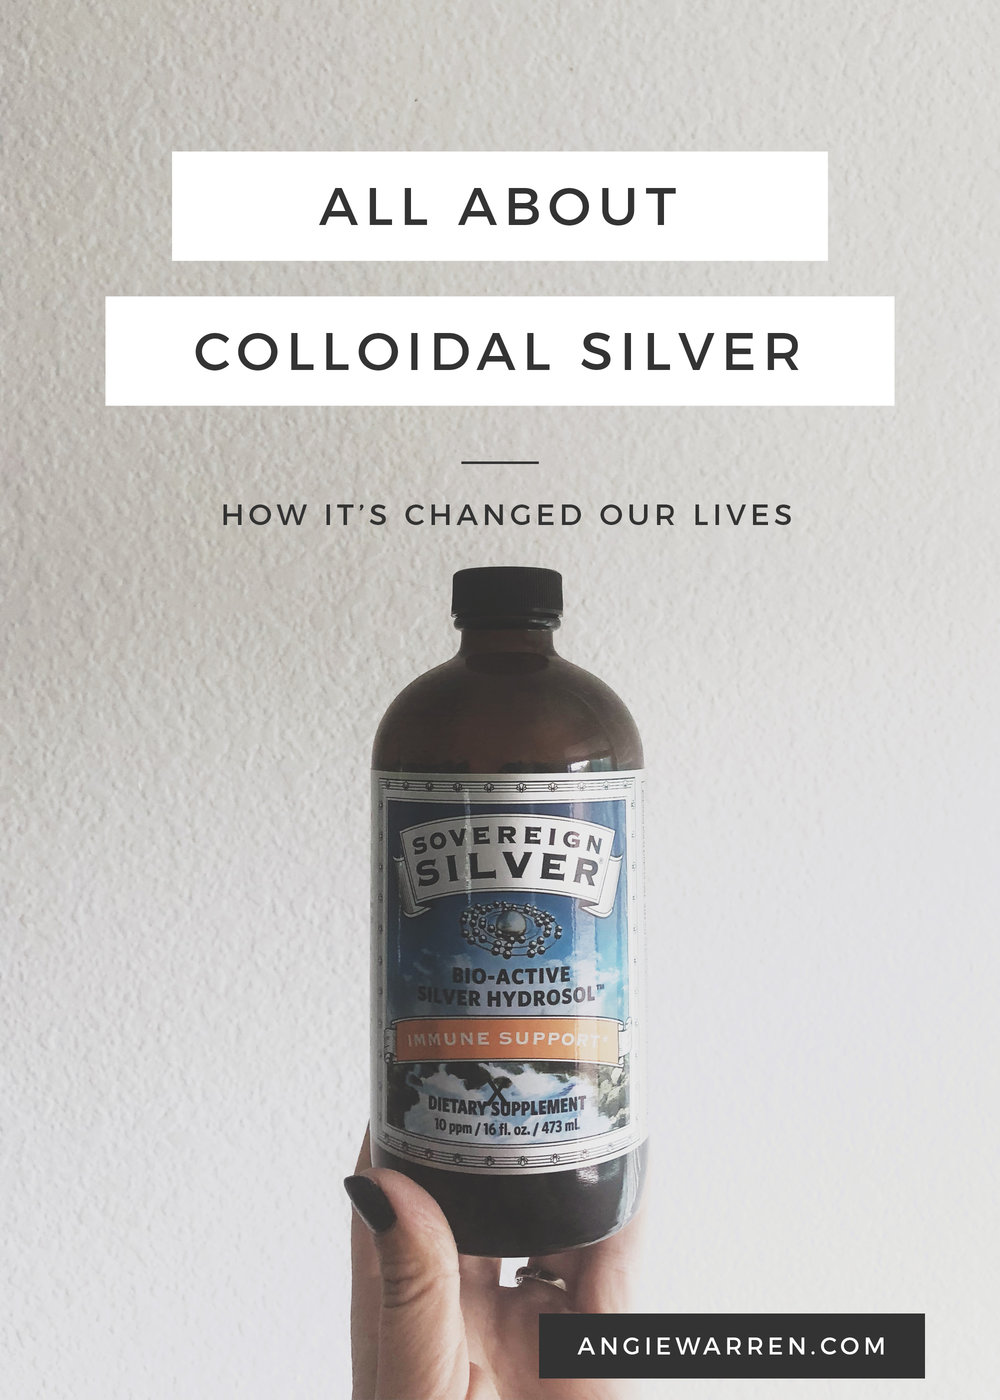 COLLOIDAL SILVER - How it's Changed Our Lives (Angie Warren)